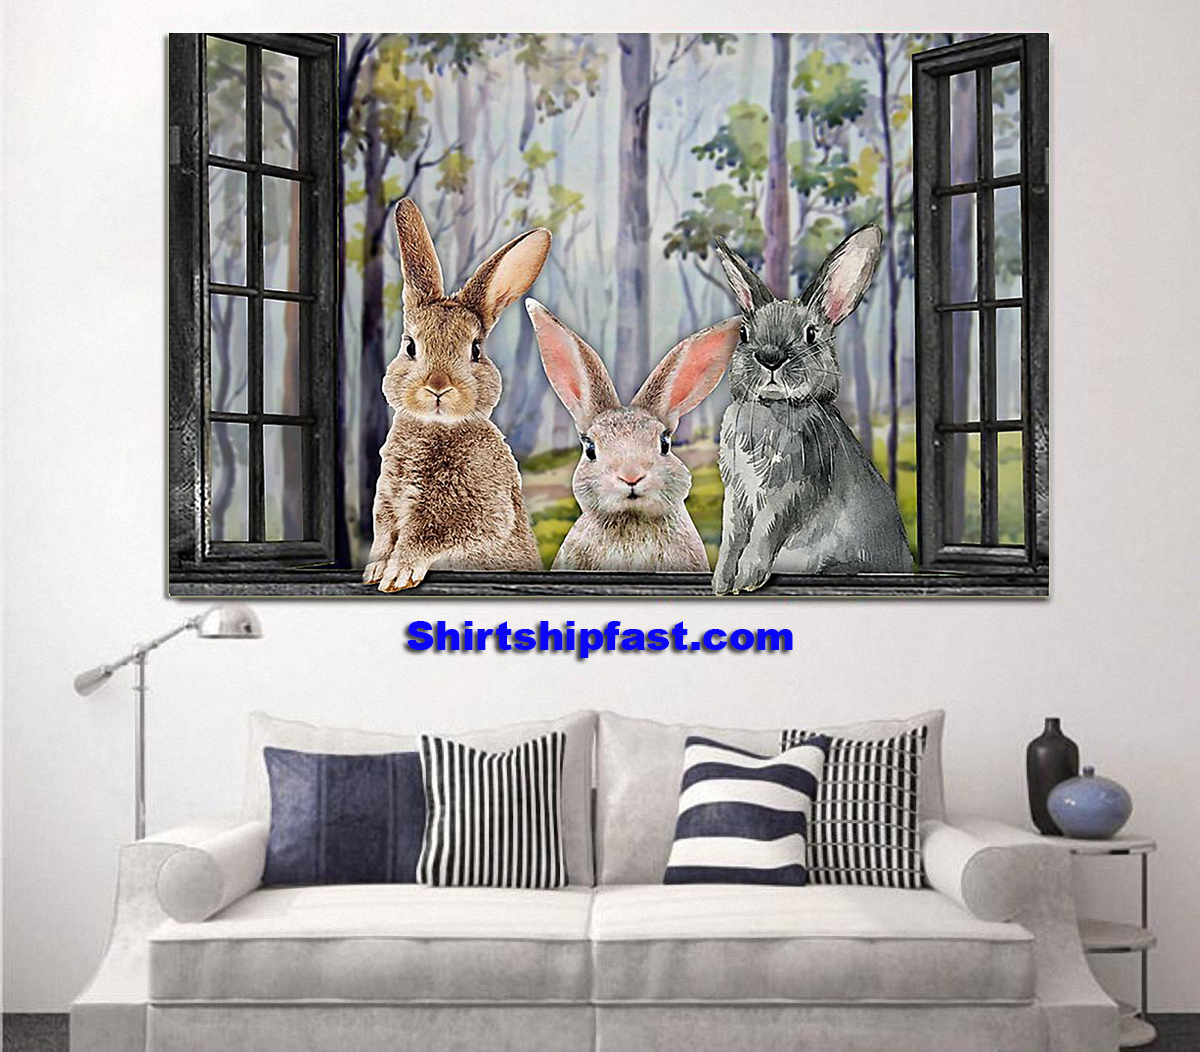 Three rabbits by the window poster - Picture 3